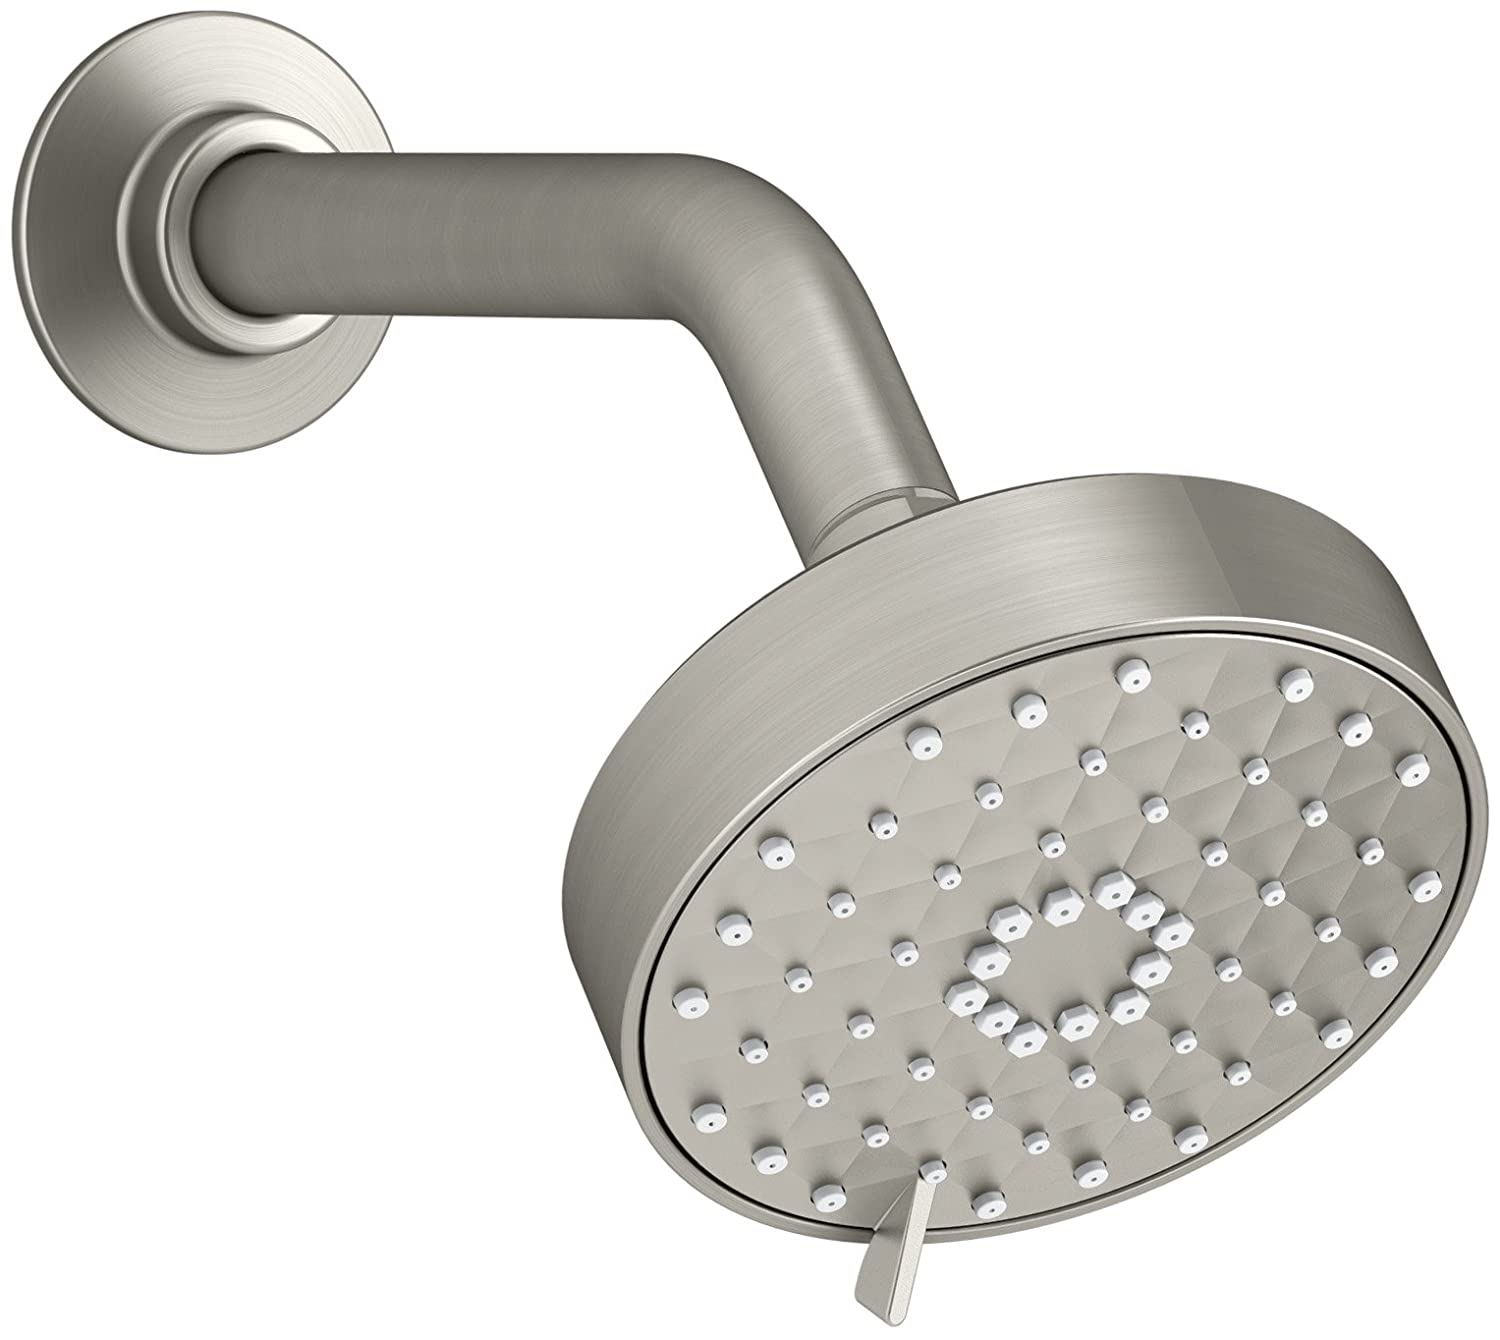 Kohler K-72419-CP Awaken G110 Multifunction Showerhead, Polished Chrome